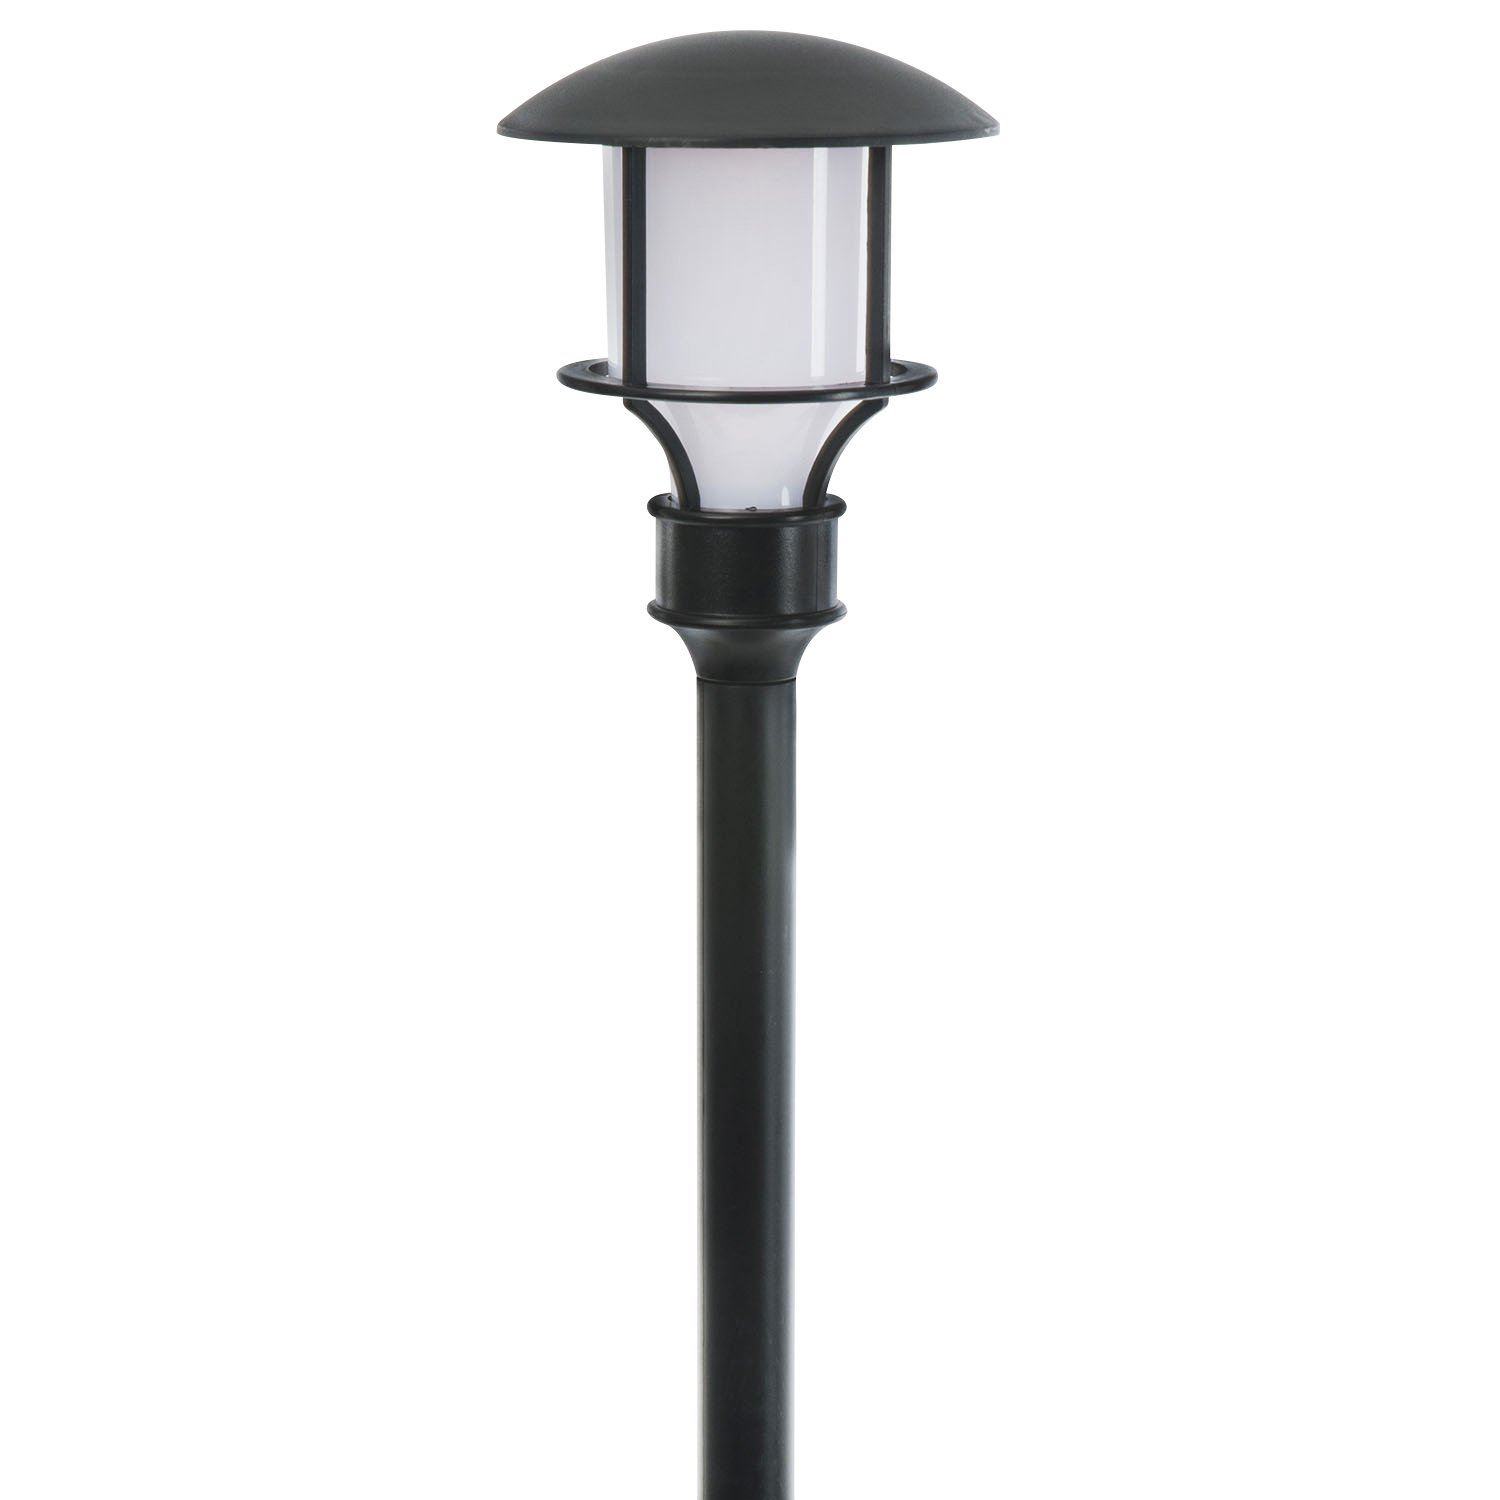 Paradise by Sterno Home Low Voltage LED Path Light Kit, 12V, 16 Lumens, 6-Pack